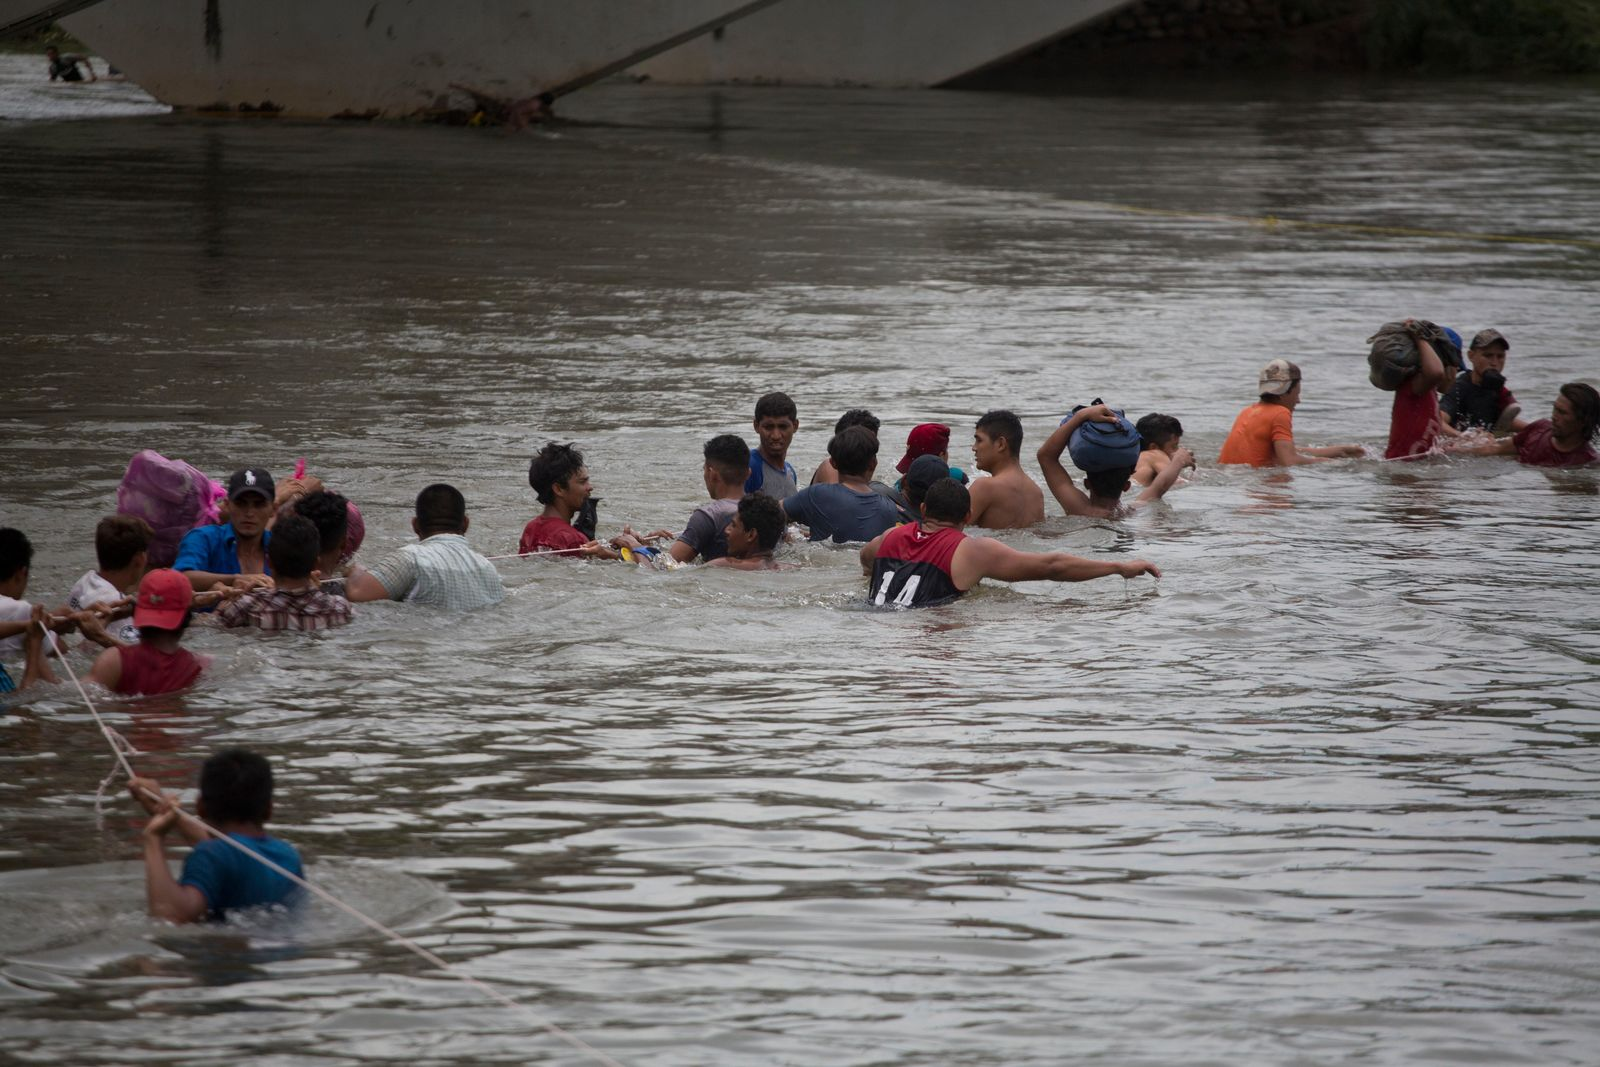 A group of Central American migrants wade across the Suchiate River, on the the border between Guatemala and Mexico, in Ciudad Hidalgo, Mexico, Saturday, Oct. 20, 2018.{ } (AP Photo/Moises Castillo)